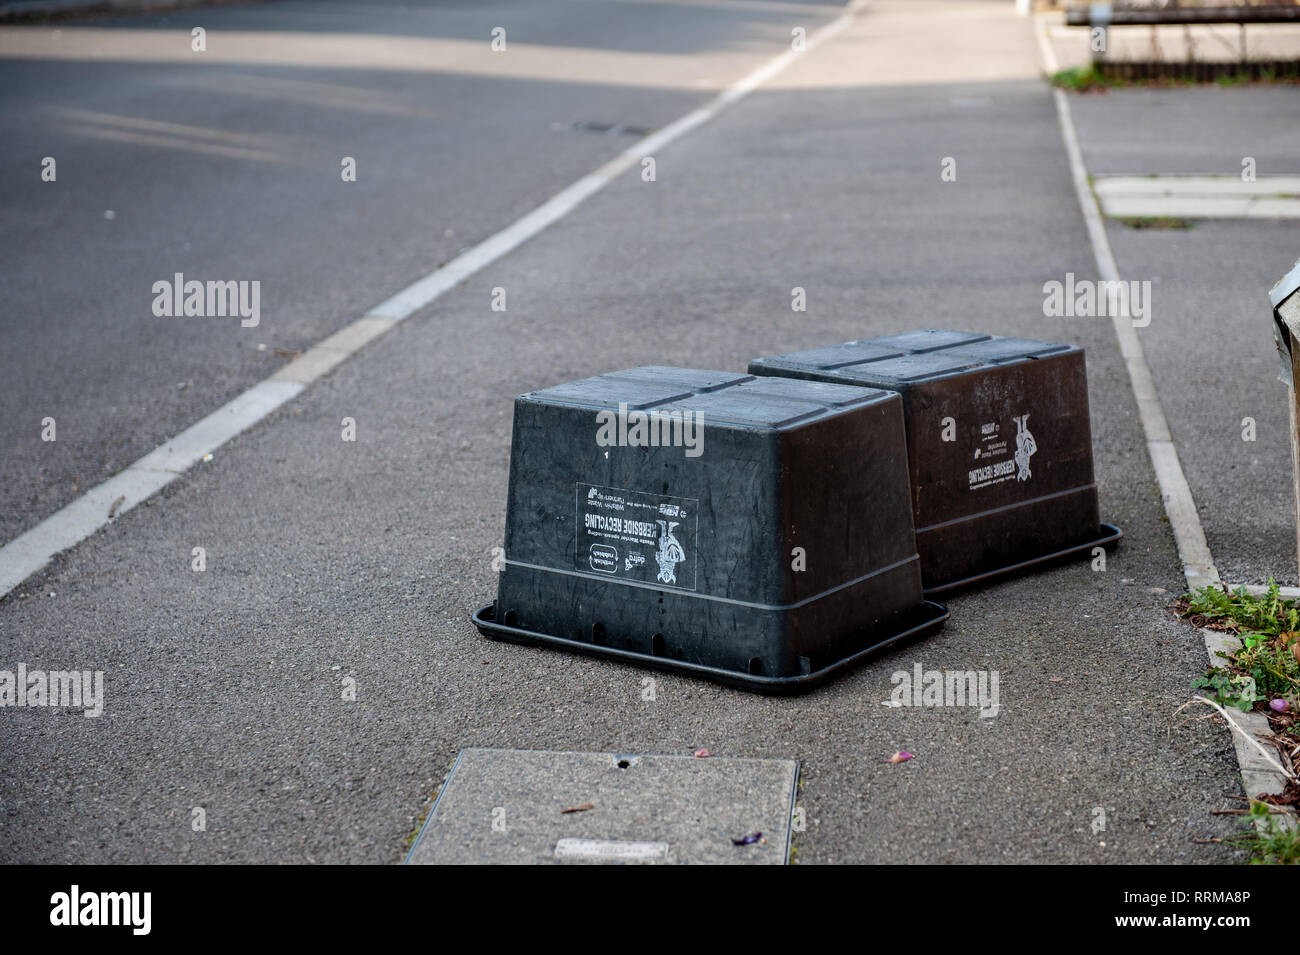 Black Box containers emptied! Local refuse collection for paper, cans and bottles. Stock Photo